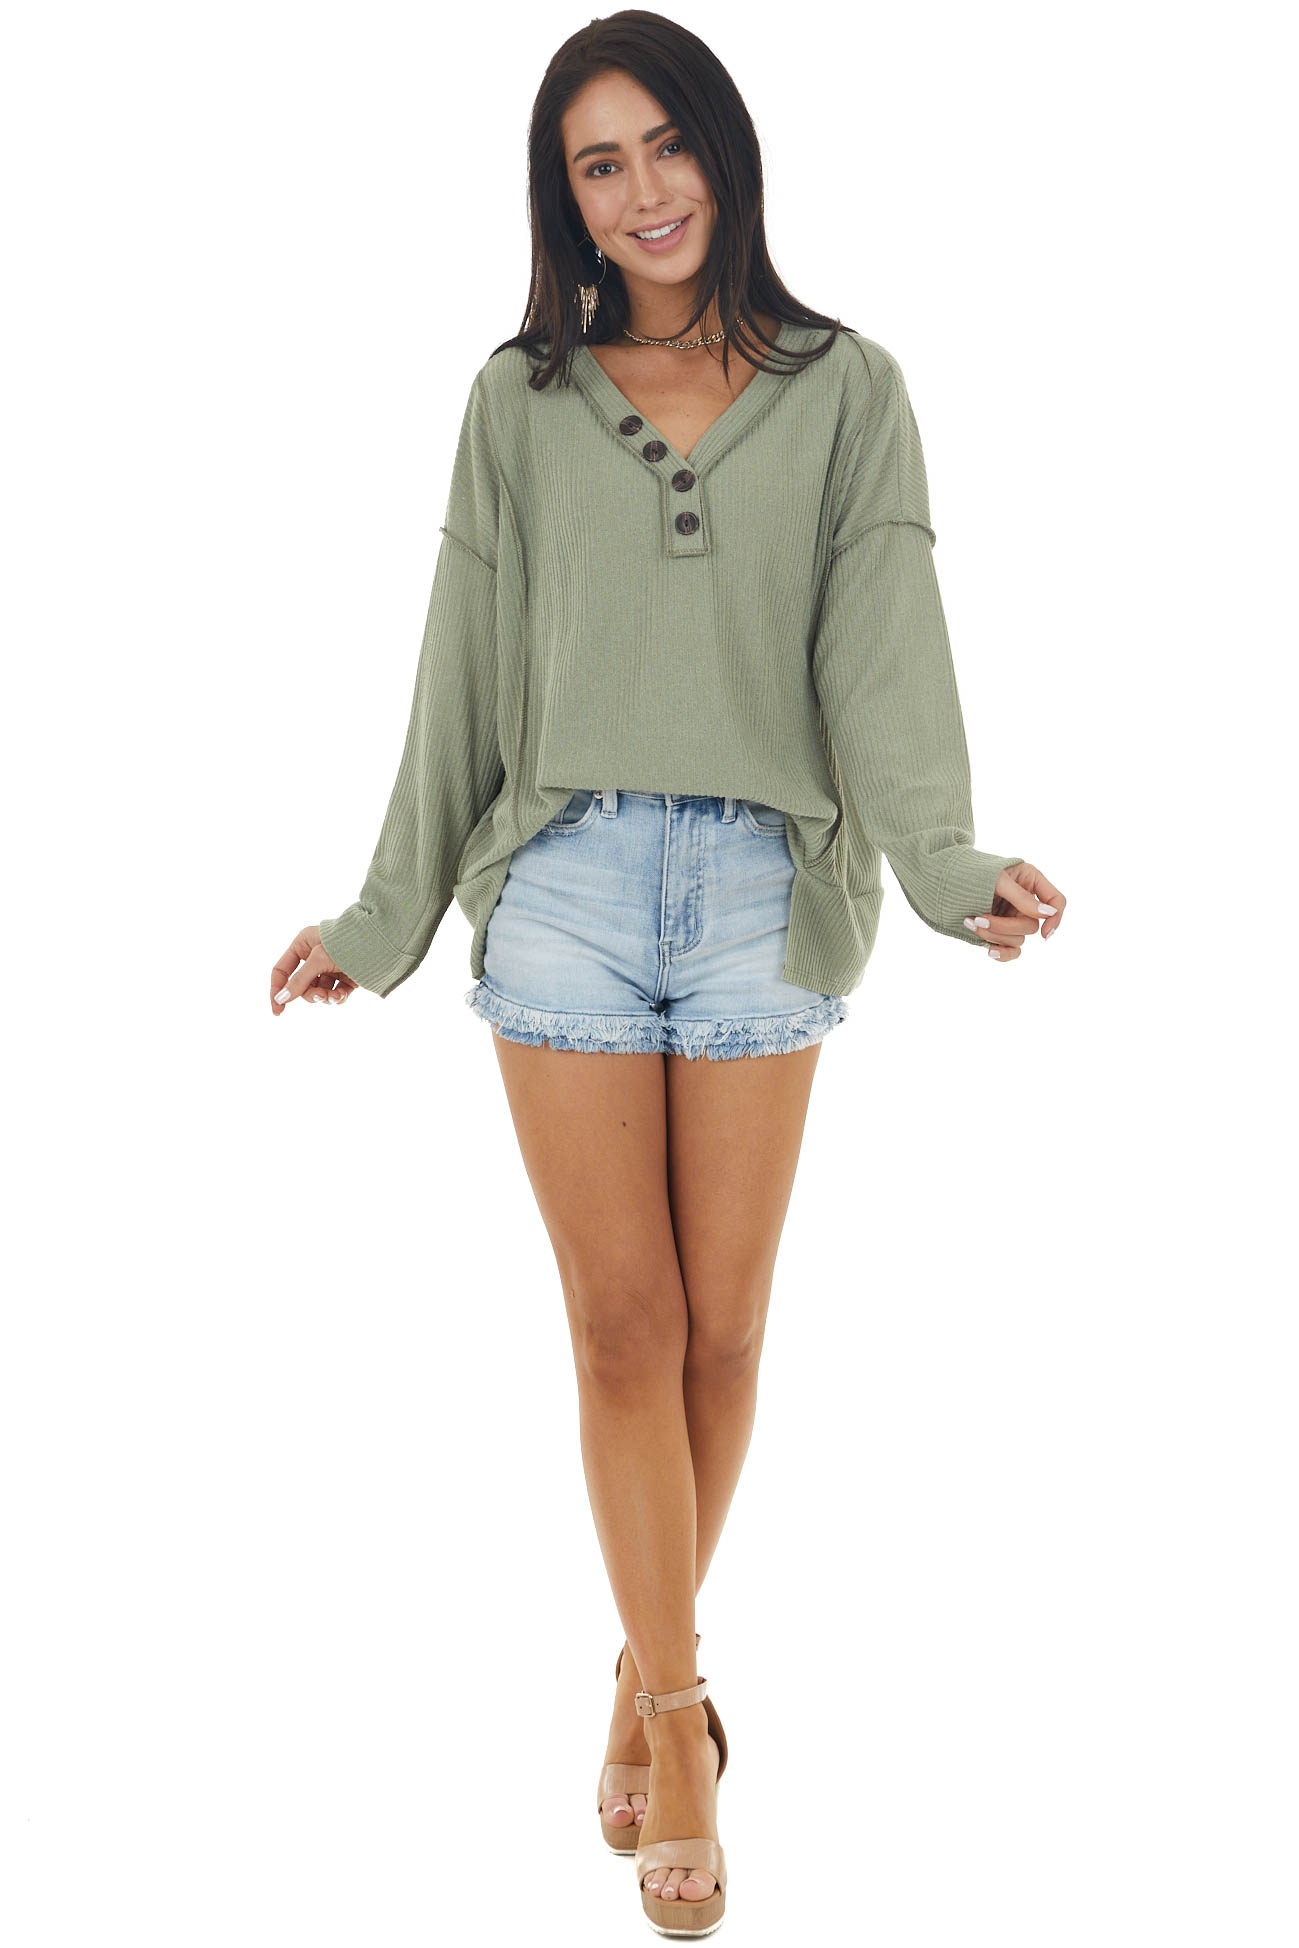 Olive Ribbed Long Sleeve V Neckline Button Down Knit Top